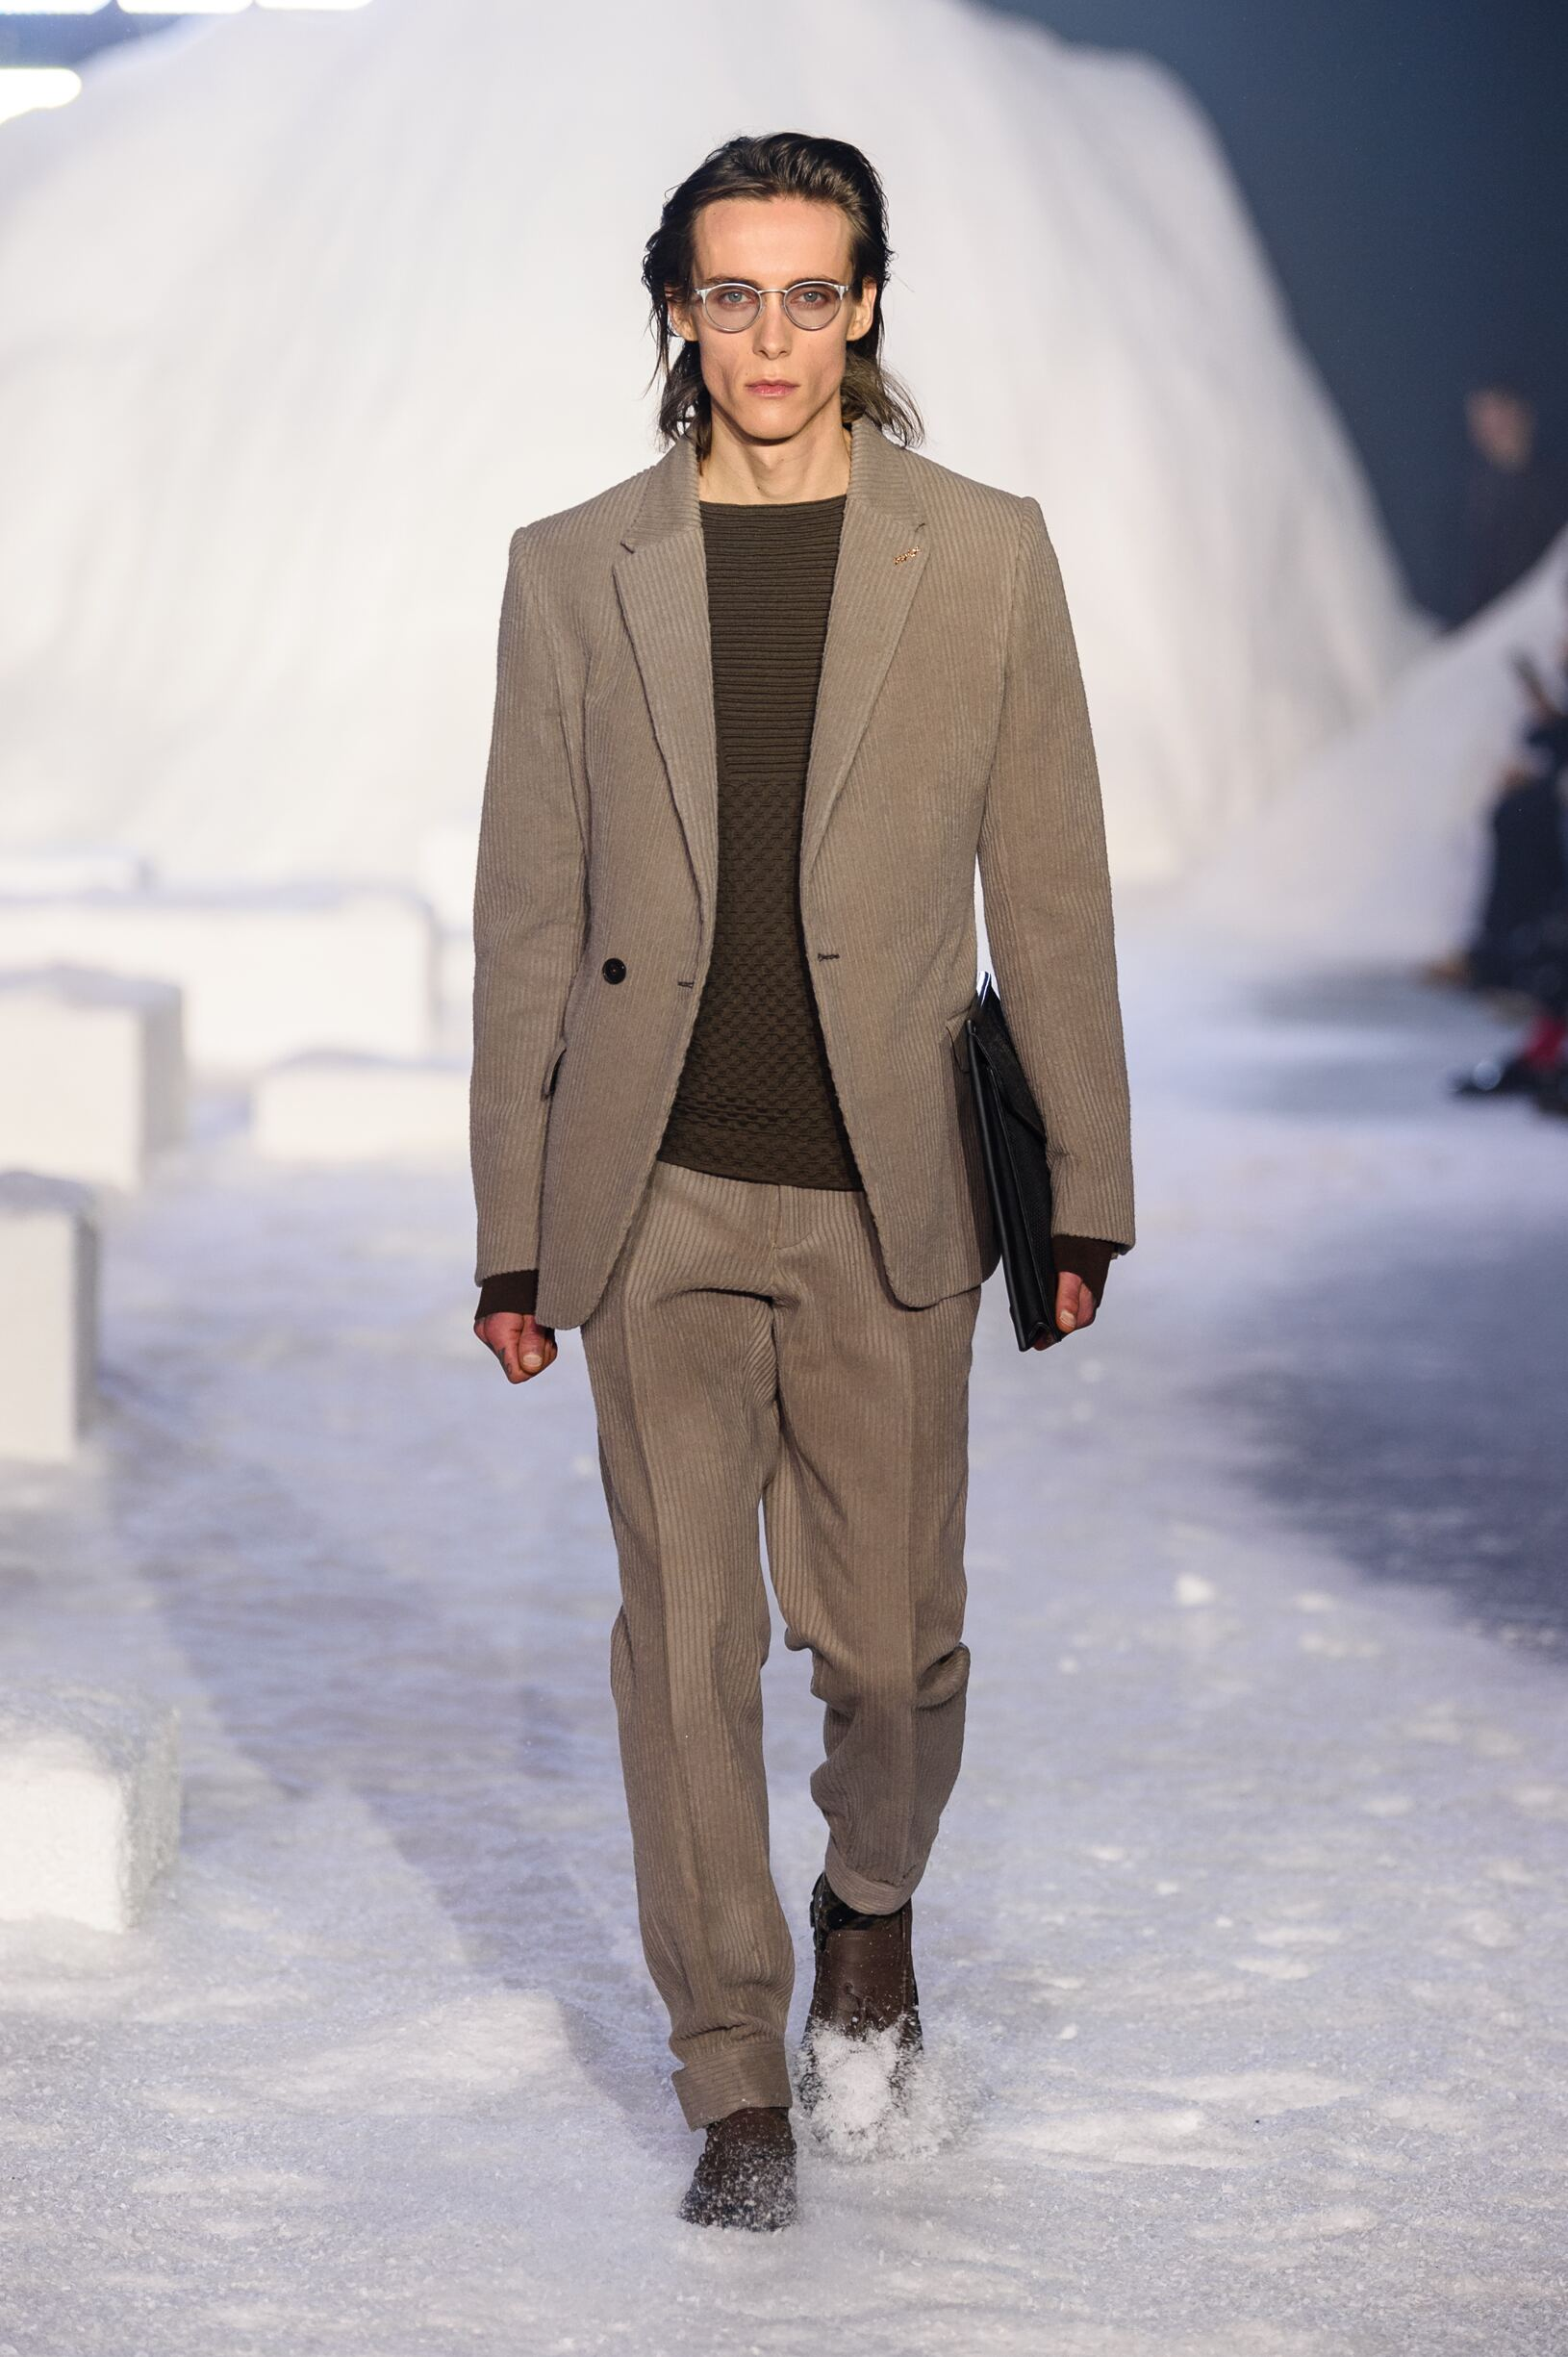 Man FW 2018-19 Fashion Show Ermenegildo Zegna Couture